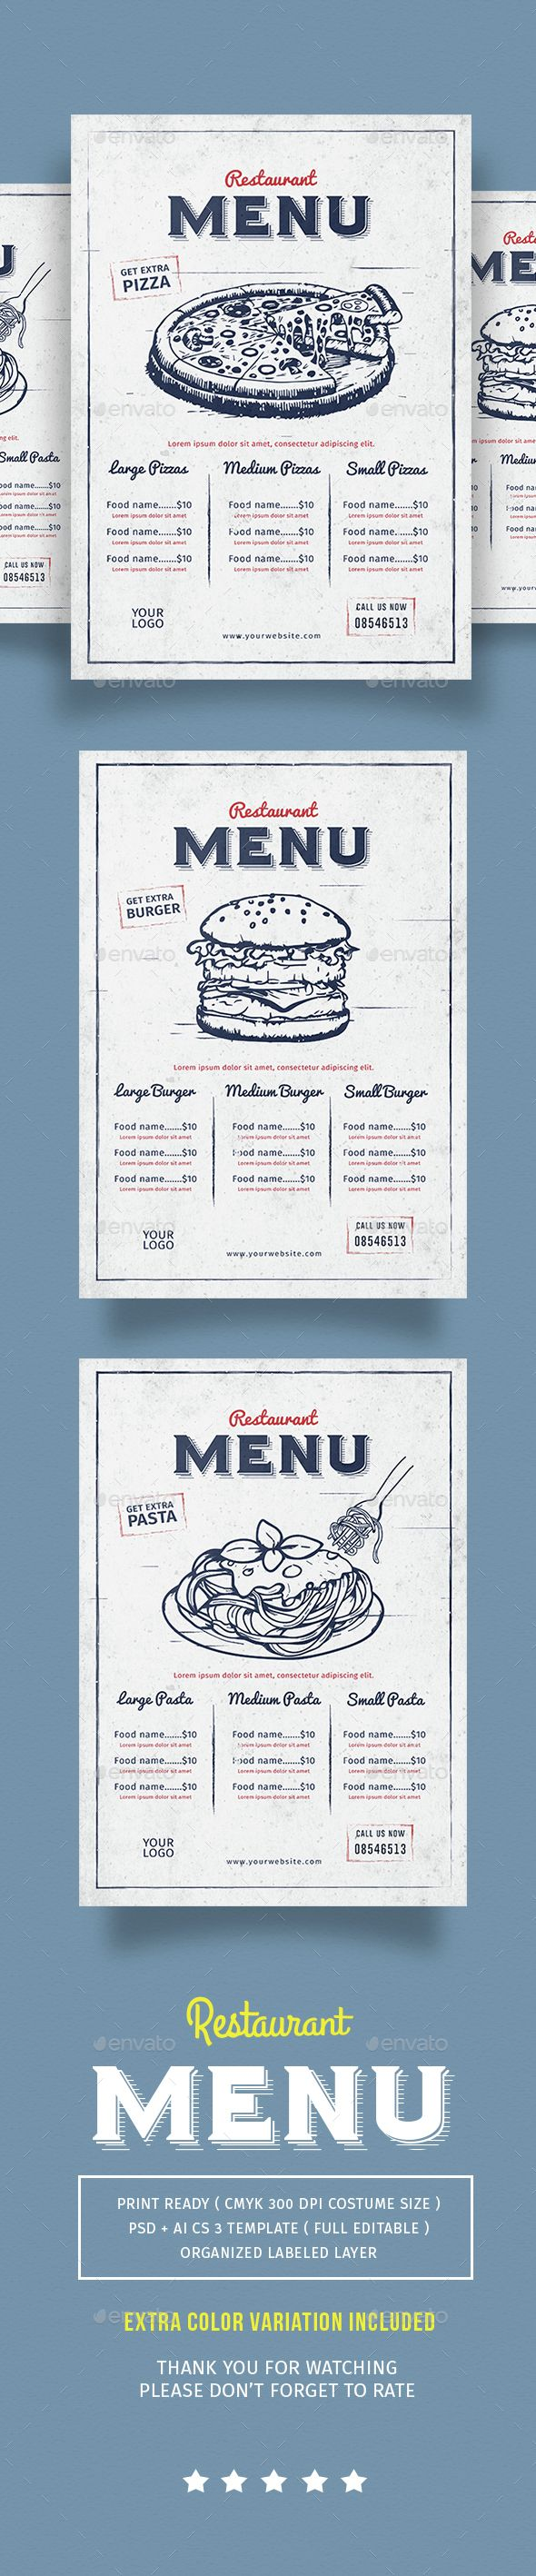 best 25+ vintage restaurant ideas only on pinterest | vintage